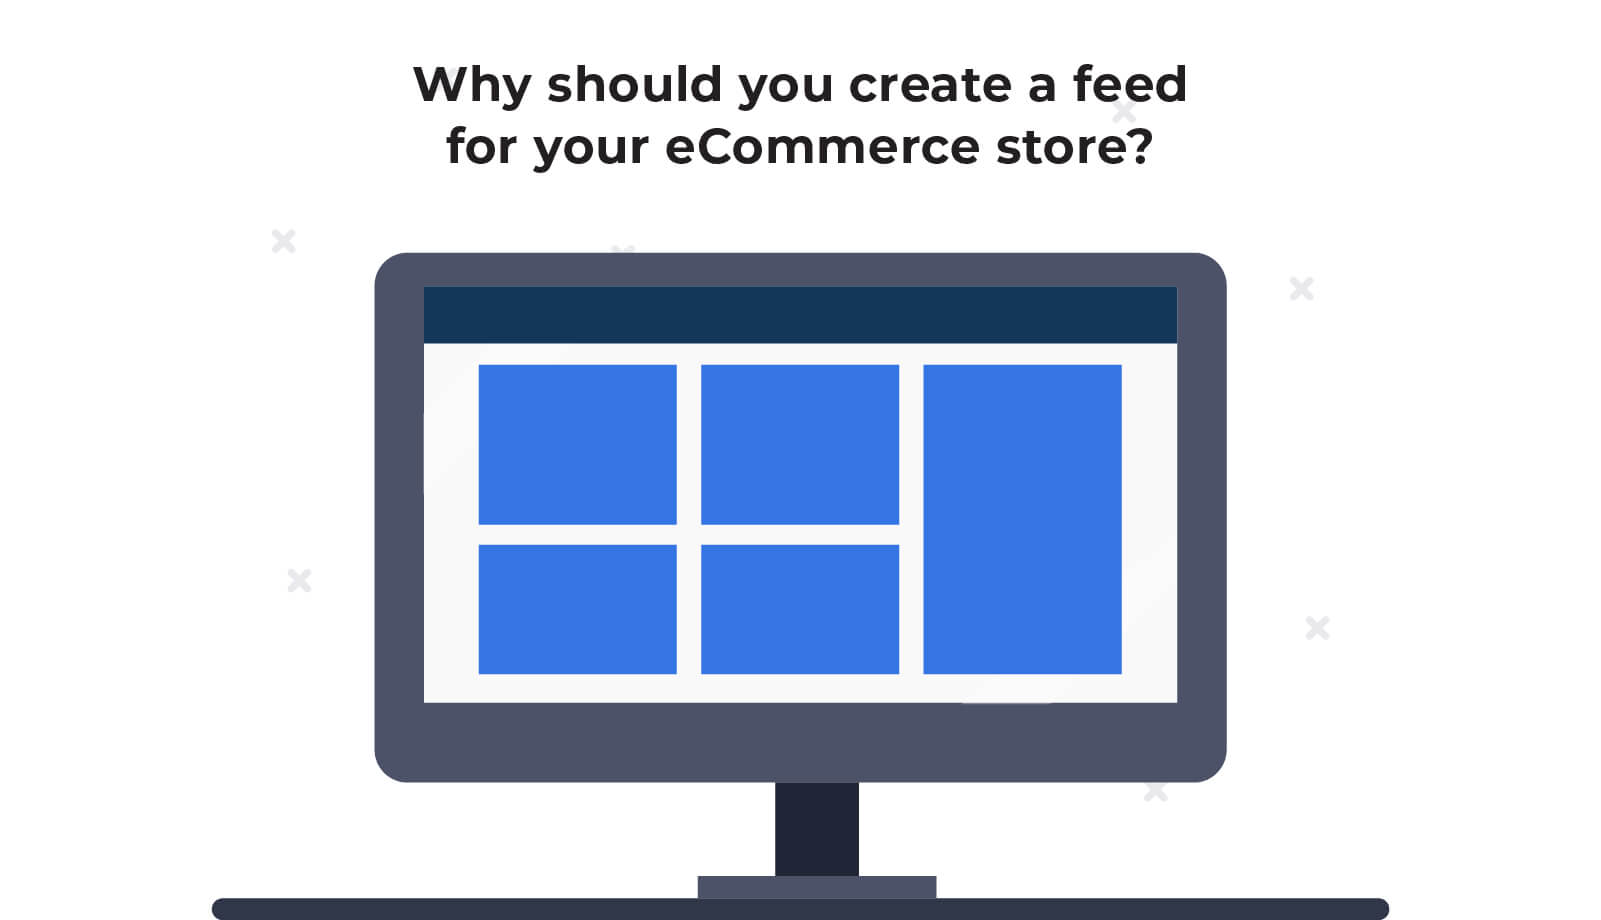 Why should you create a feed for your eCommerce store